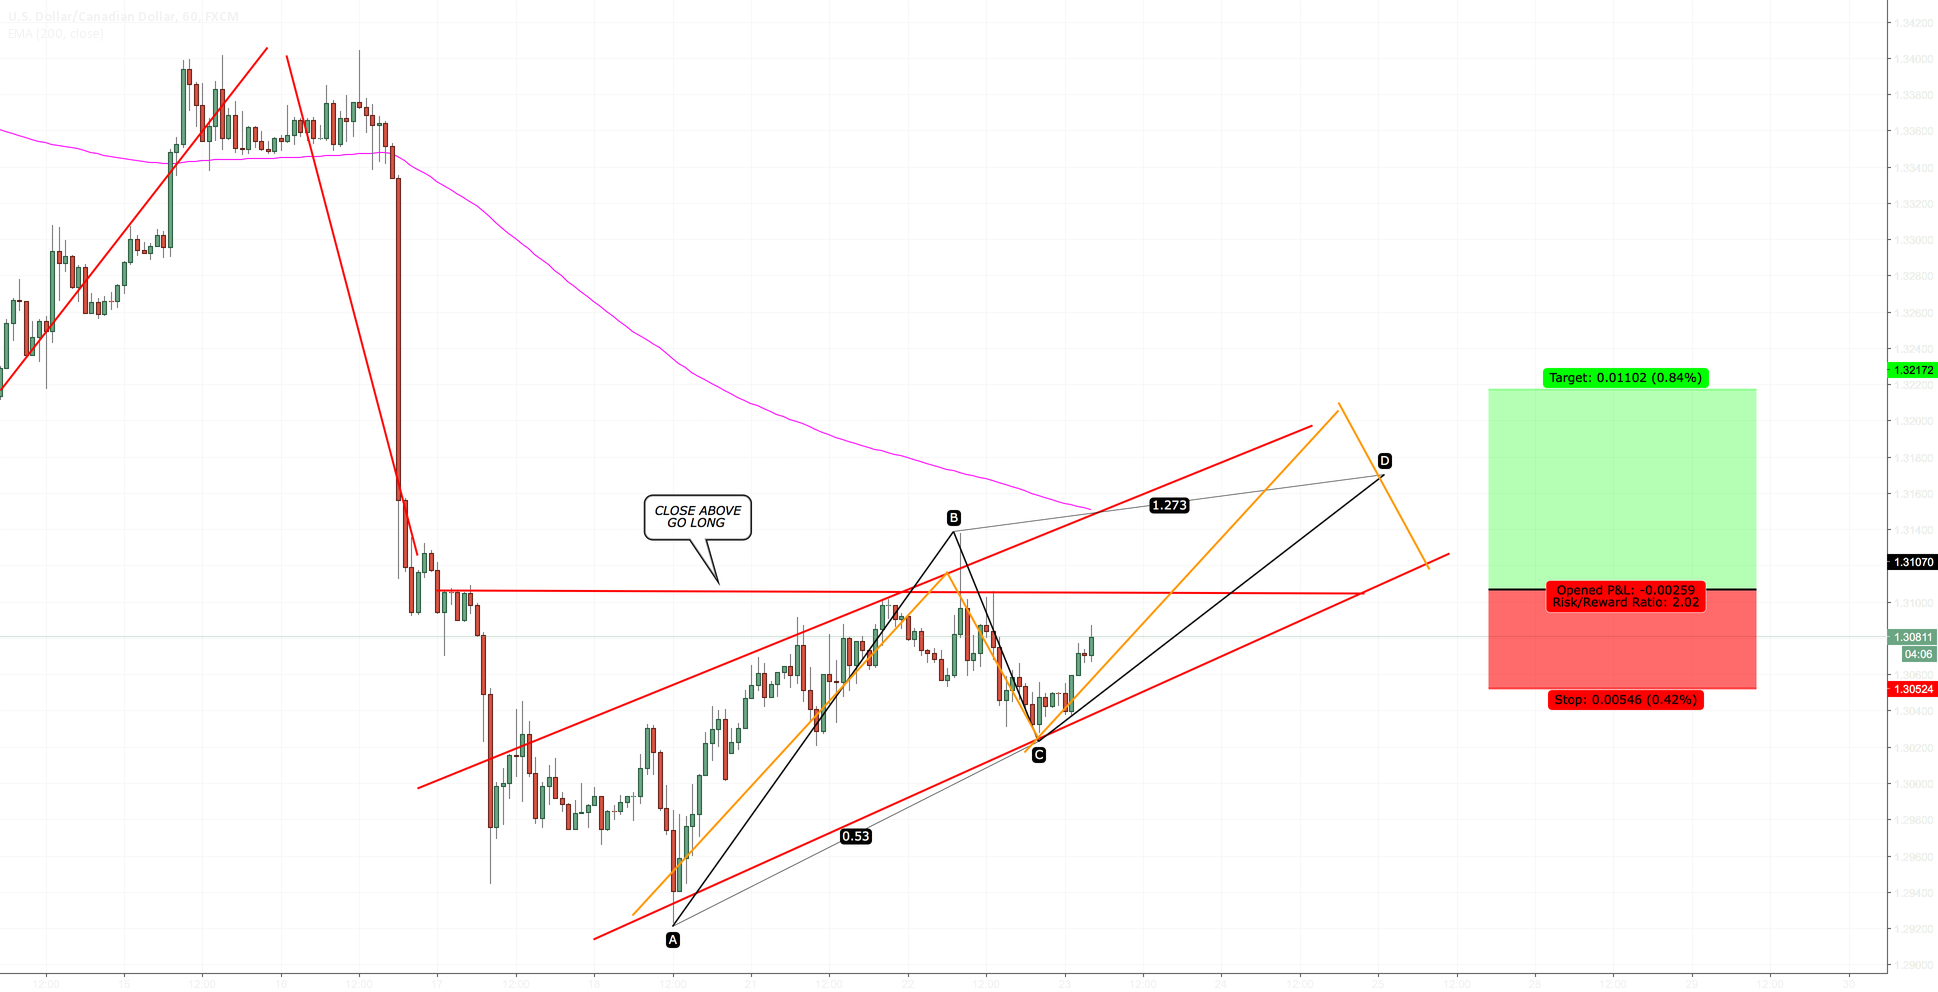 USDCAD - LONG ENTRY